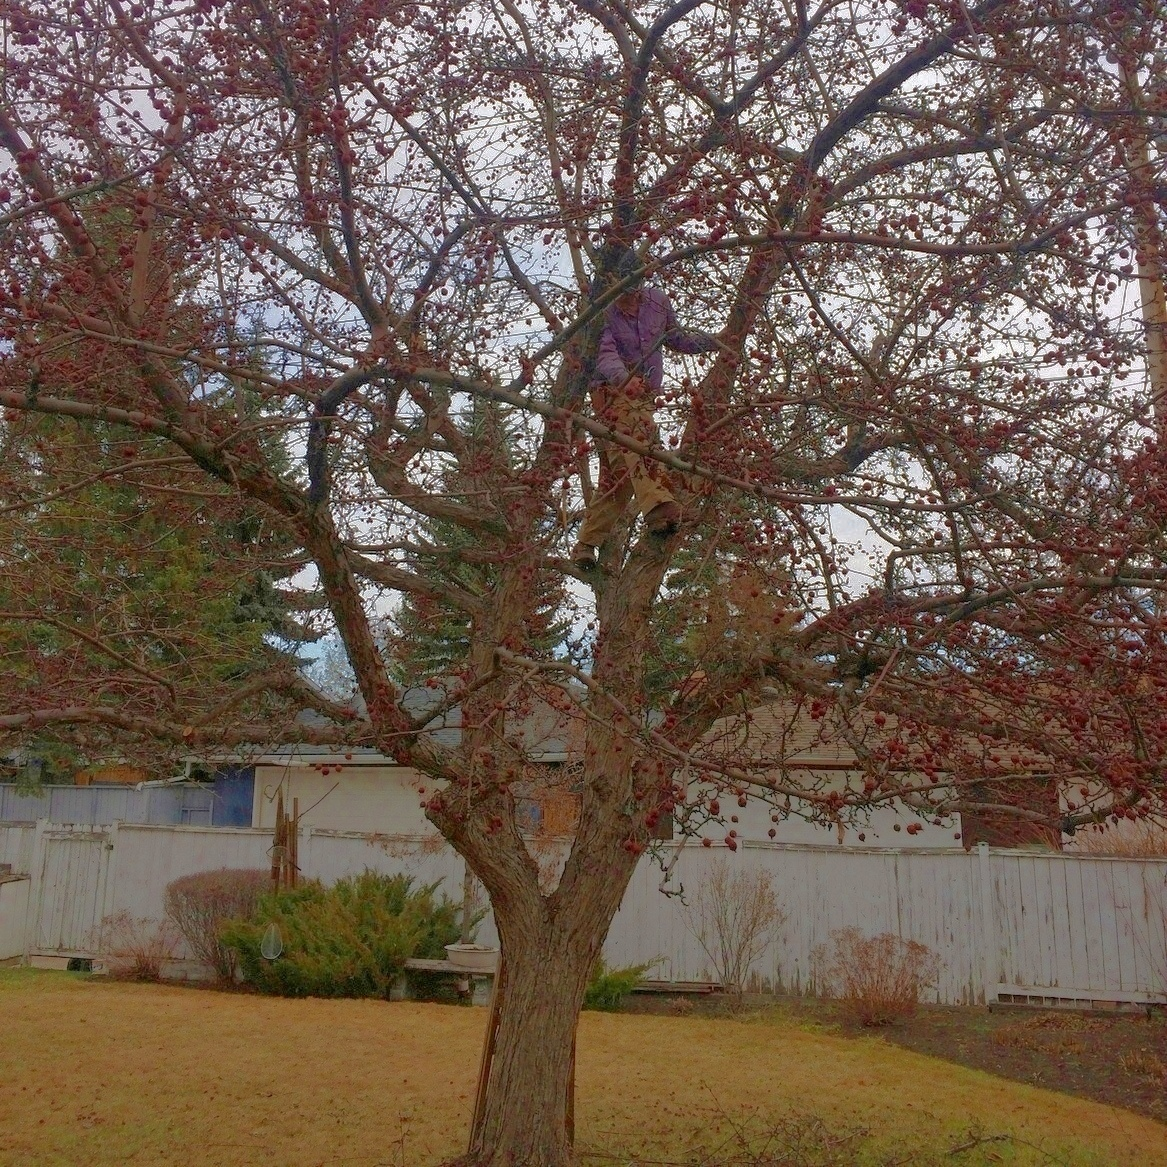 Kevin Lee Pruning in Calgary KRL Tree Service 6835 Bow Cres NW, Calgary, AB T3B 2C9 403-270-2996